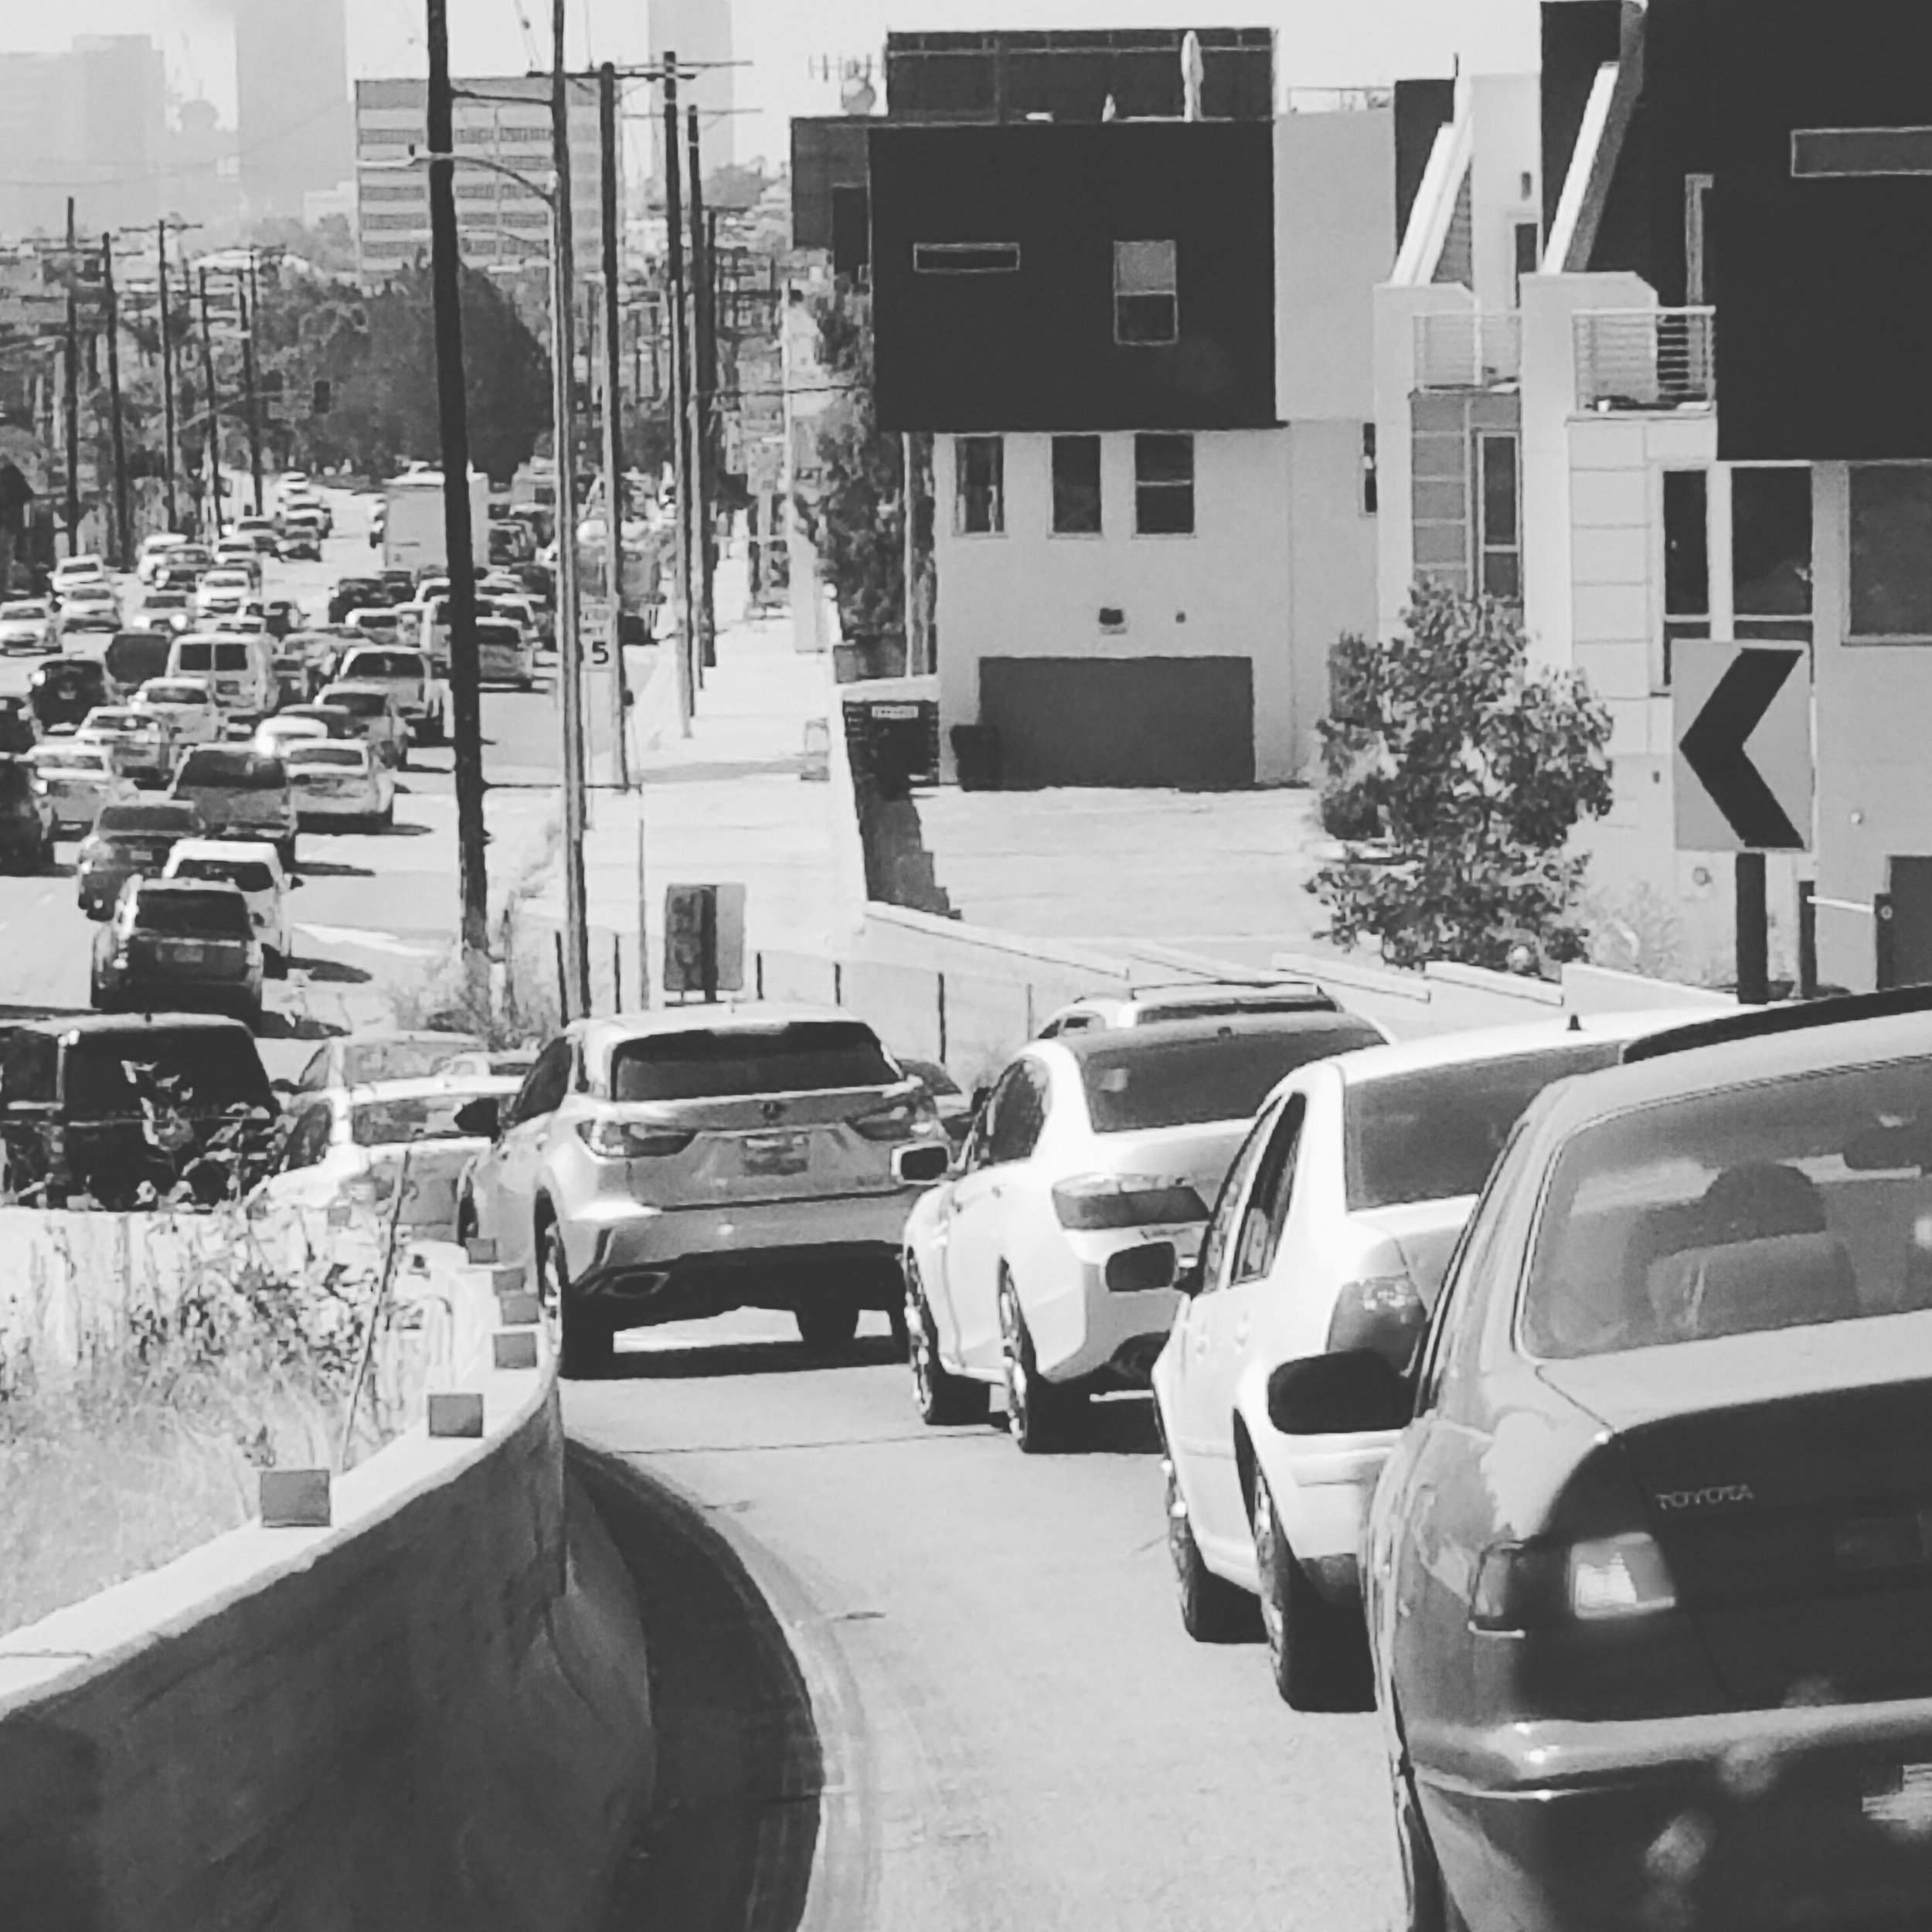 I couldn't talk about a trip to LA without mentioning the traffic! Some things never change...